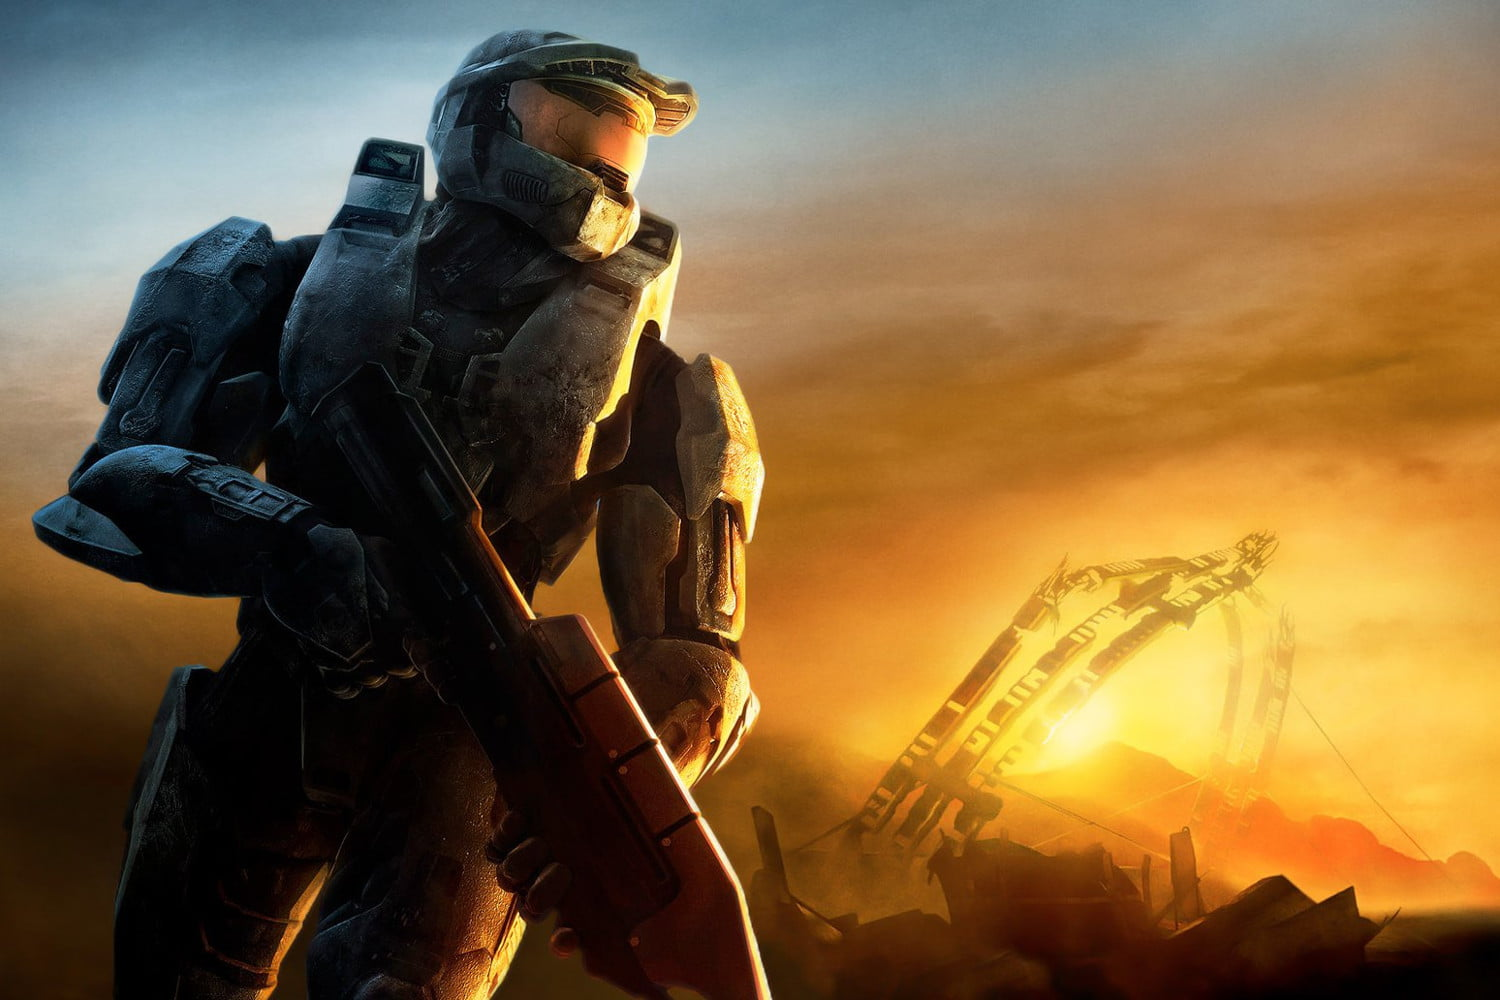 Crunch at Bungie contributed to Halo co-creator's departure